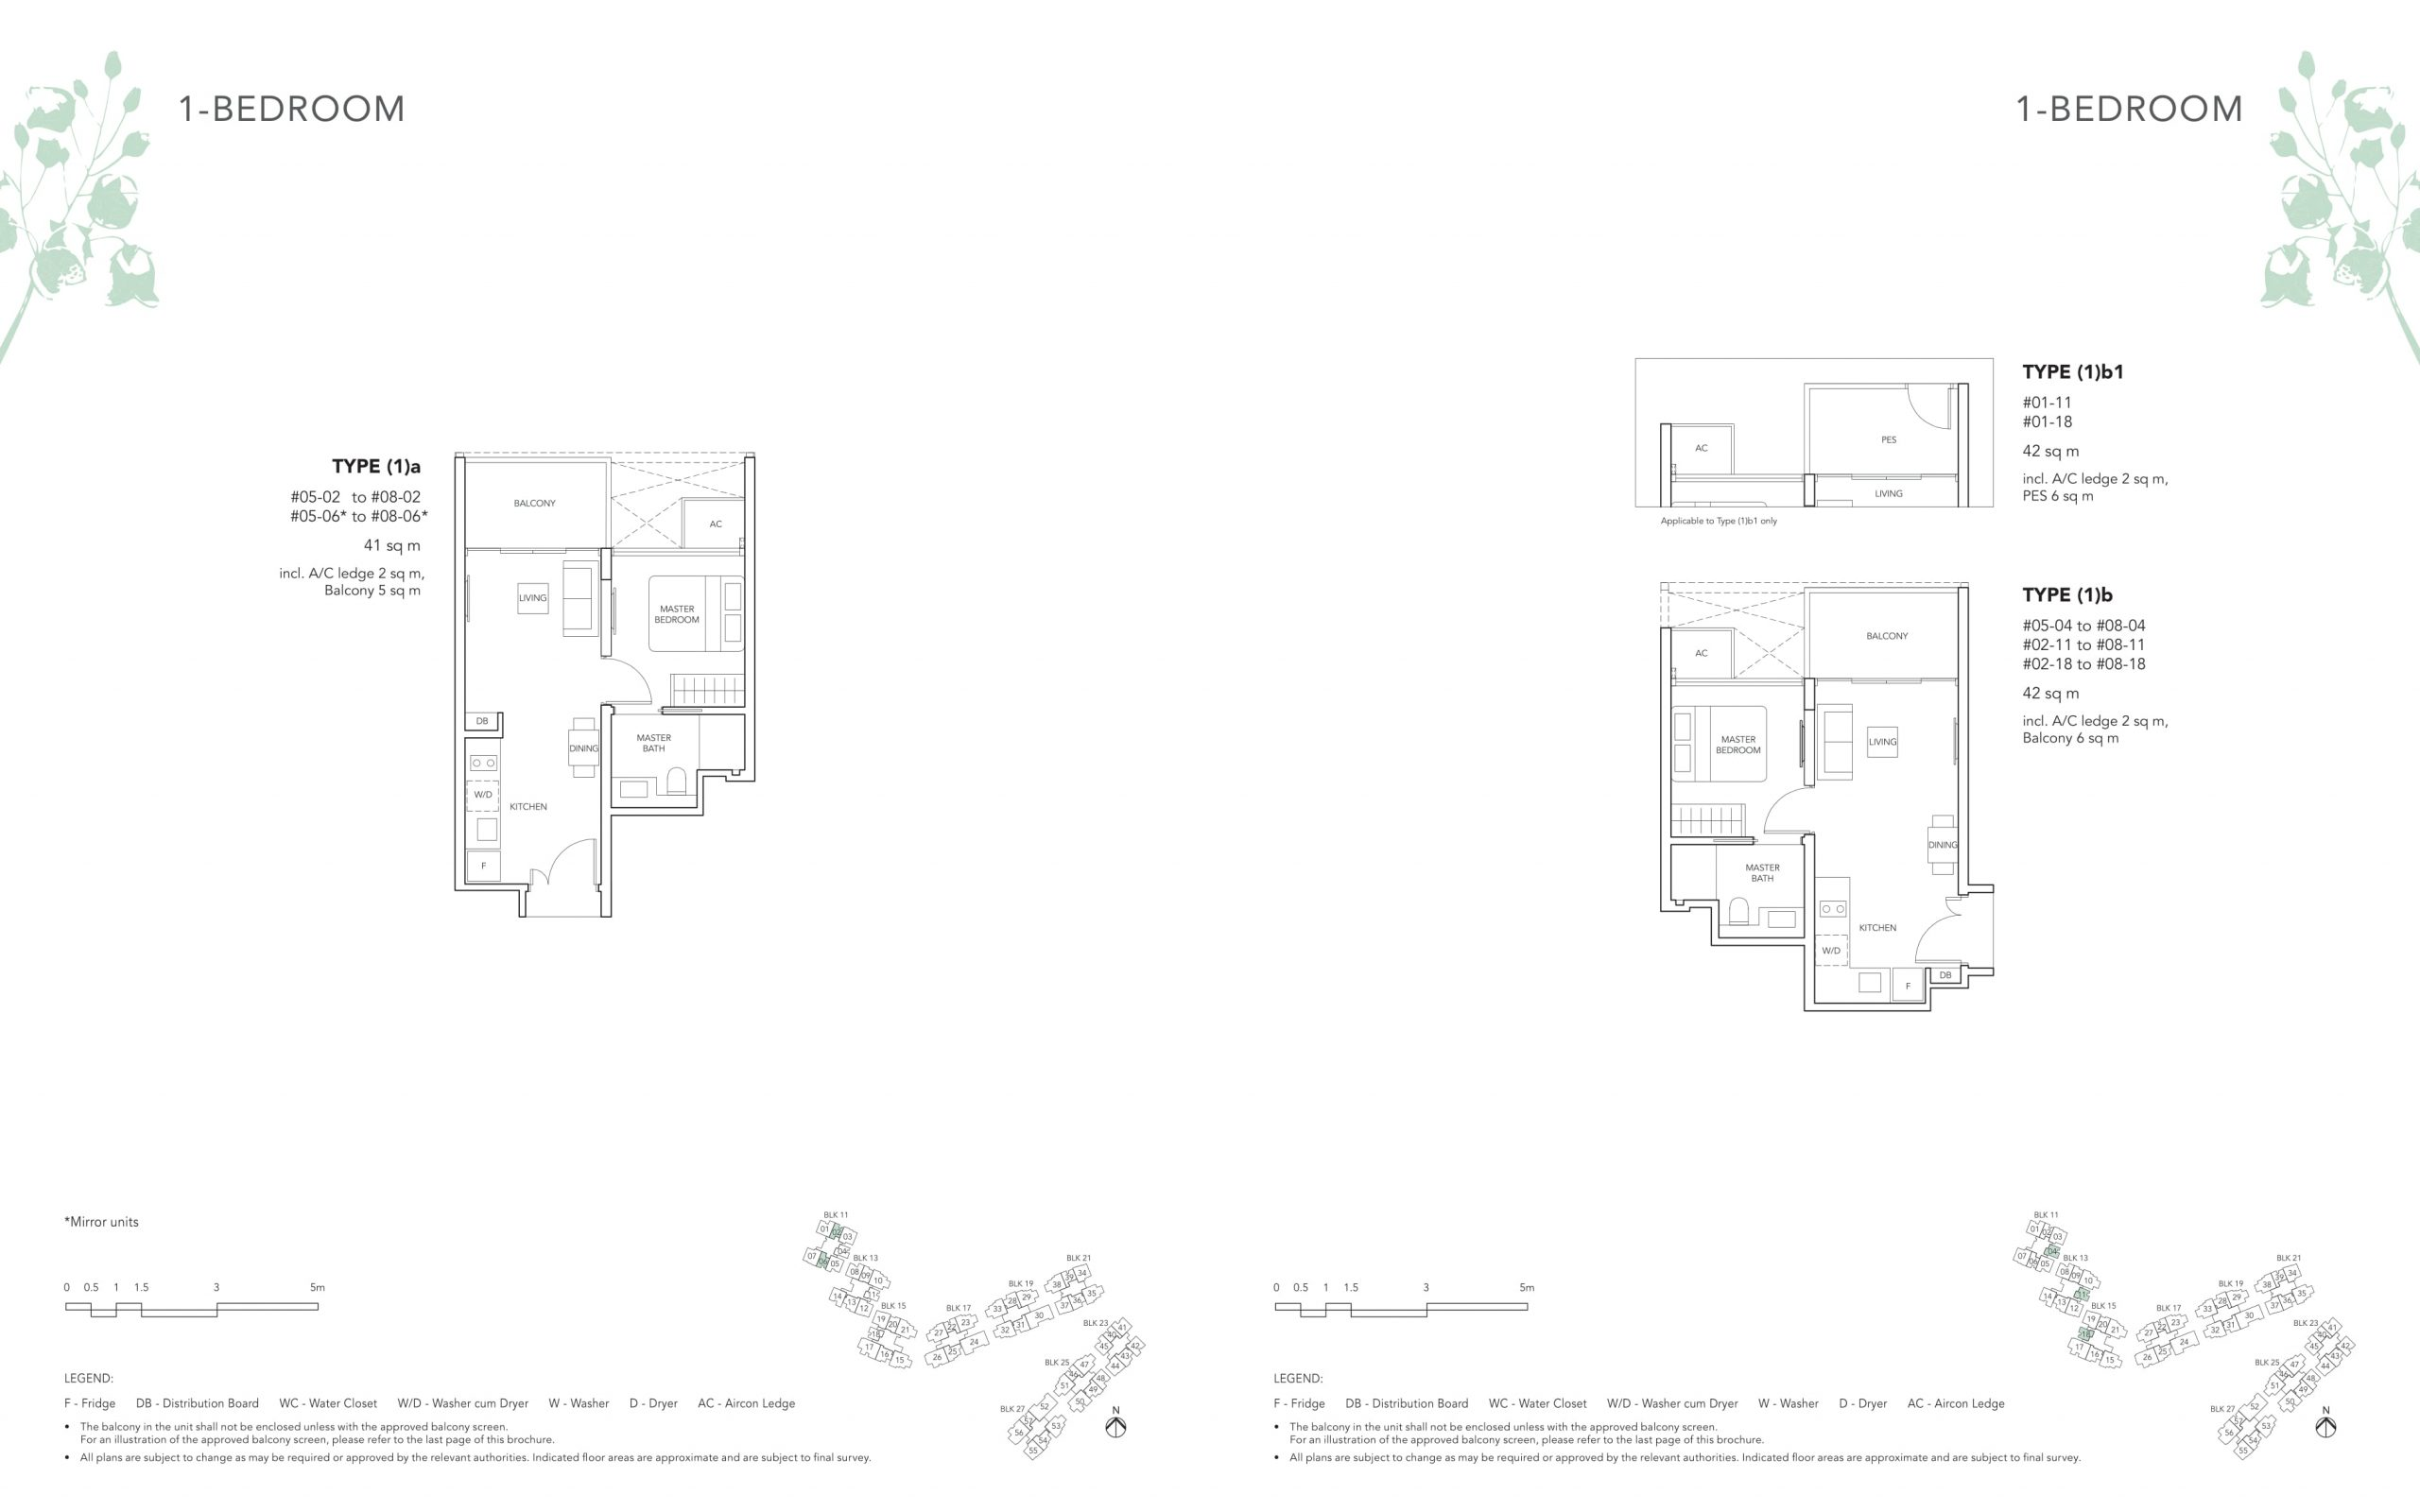 The Jovell's one-bedroom & one-bedroom with study types